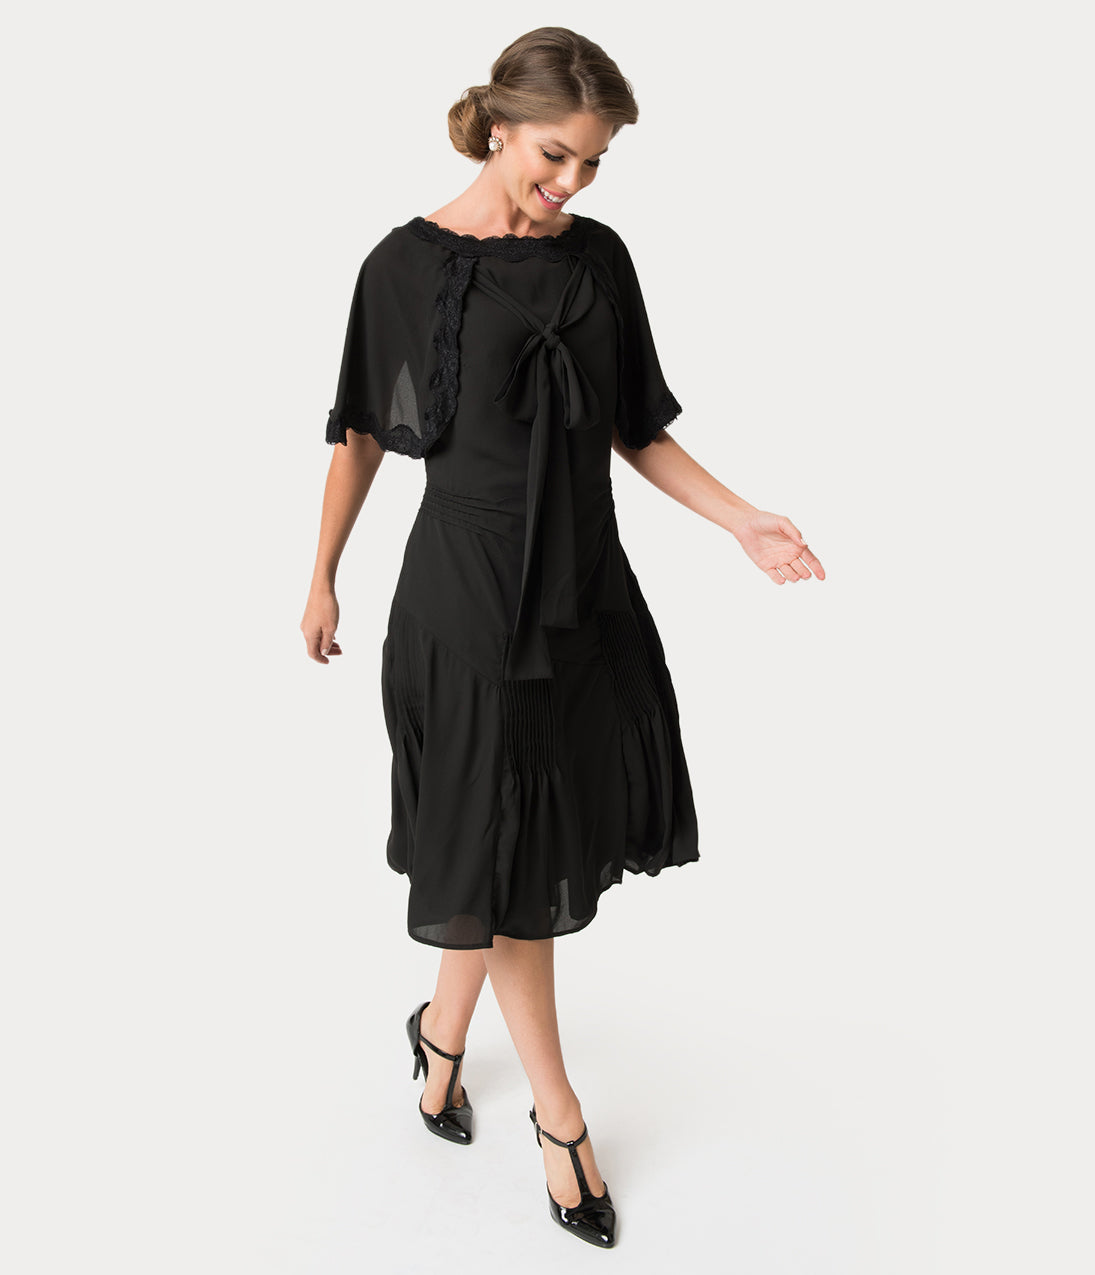 1930s Evening Dresses | Old Hollywood Dress Unique Vintage 1930S Style Black Dewitt Day Flapper Dress $110.00 AT vintagedancer.com